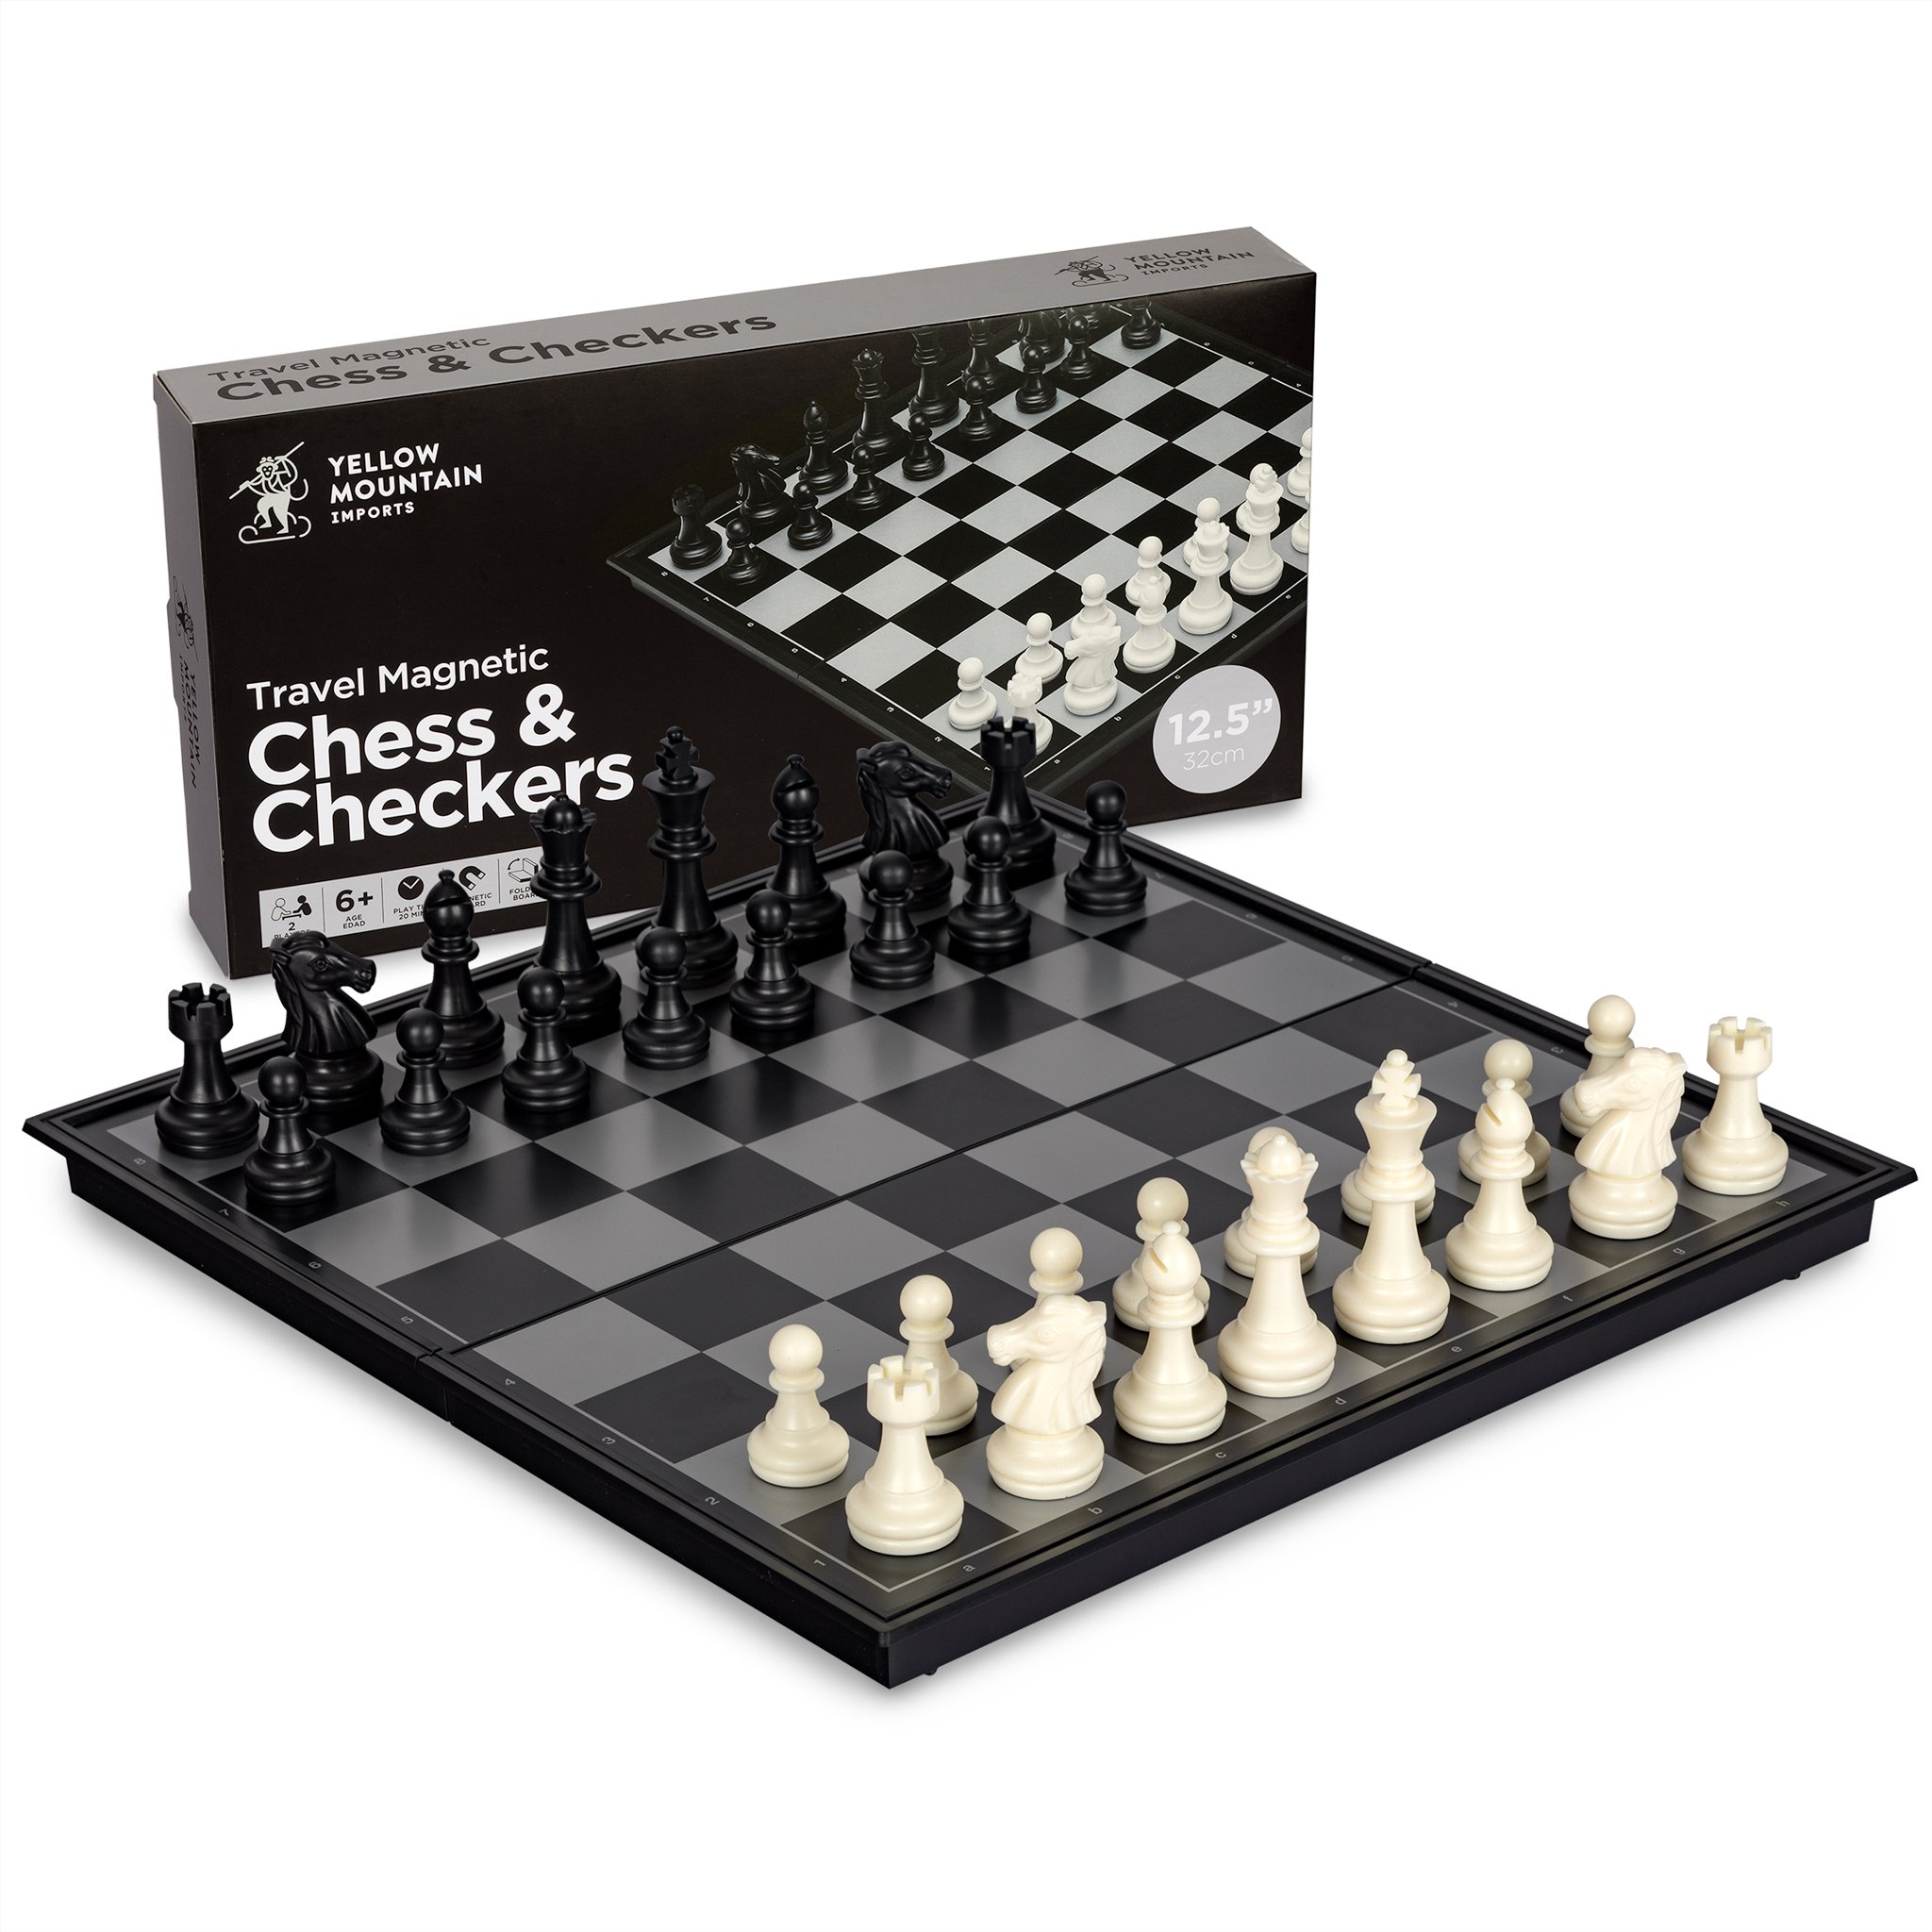 Yellow Mountain Imports 2 in 1 Travel Magnetic Chess and Checkers Game Set, 12.5 Inches